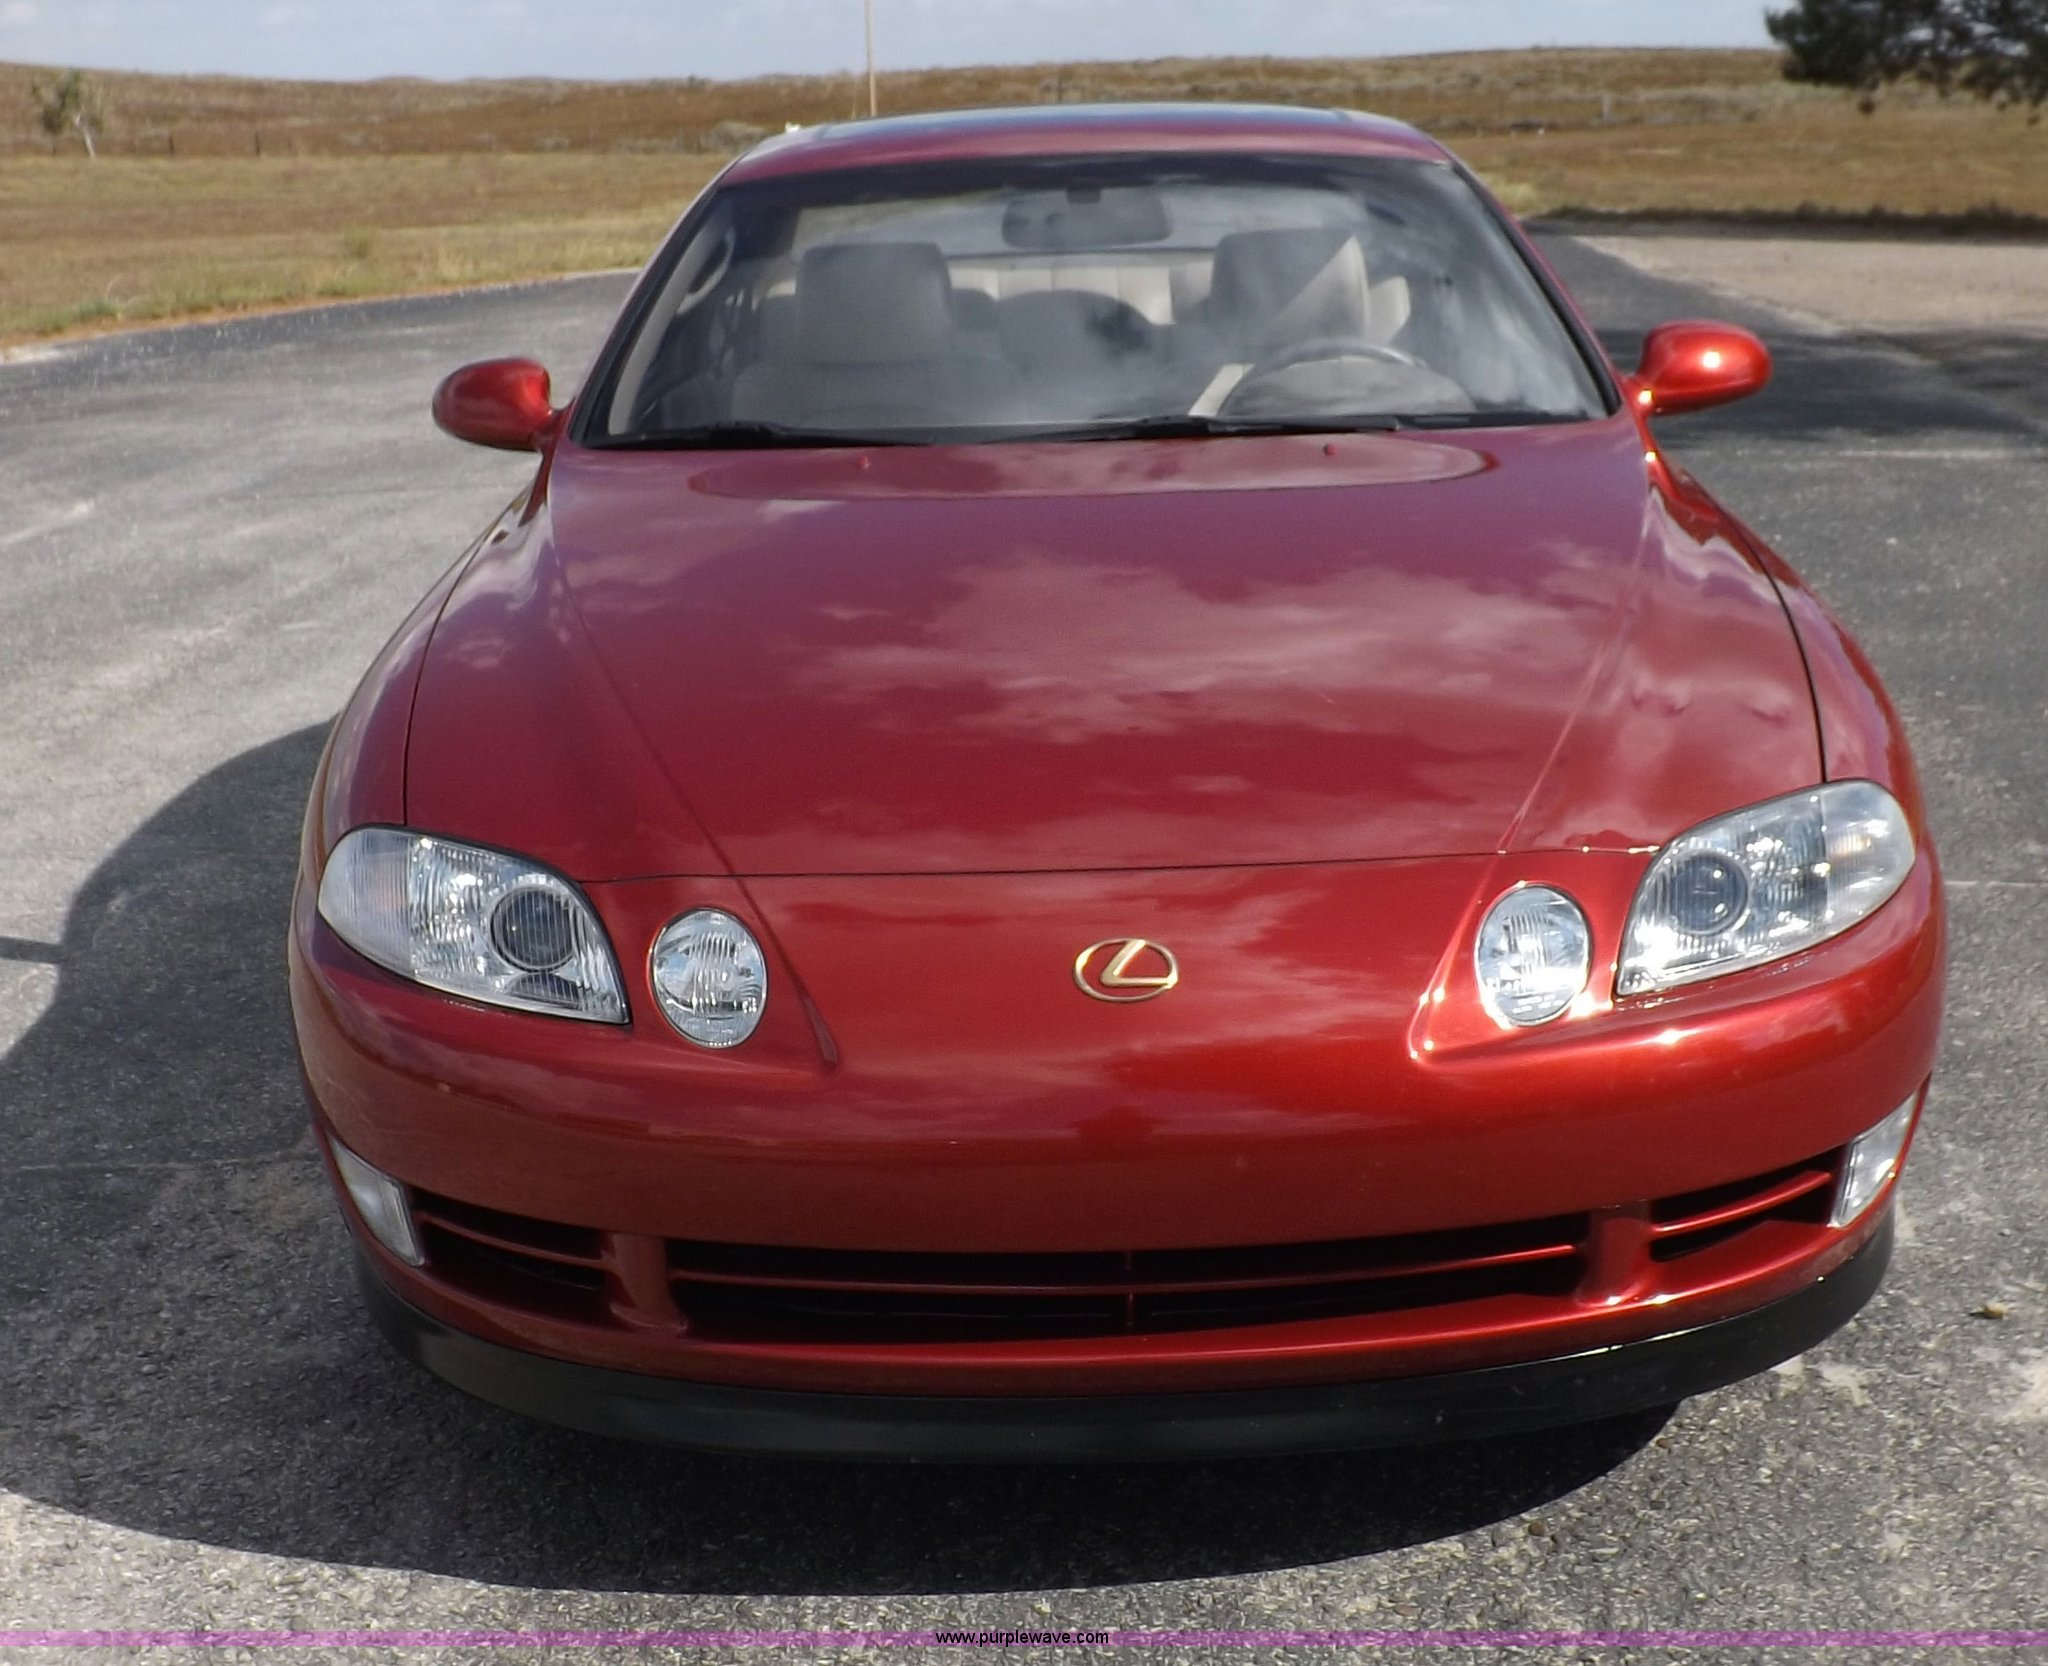 1992 Lexus Sc400 Item F6106 Sold Wednesday December 5 G Super Coupe 400 Full Size In New Window